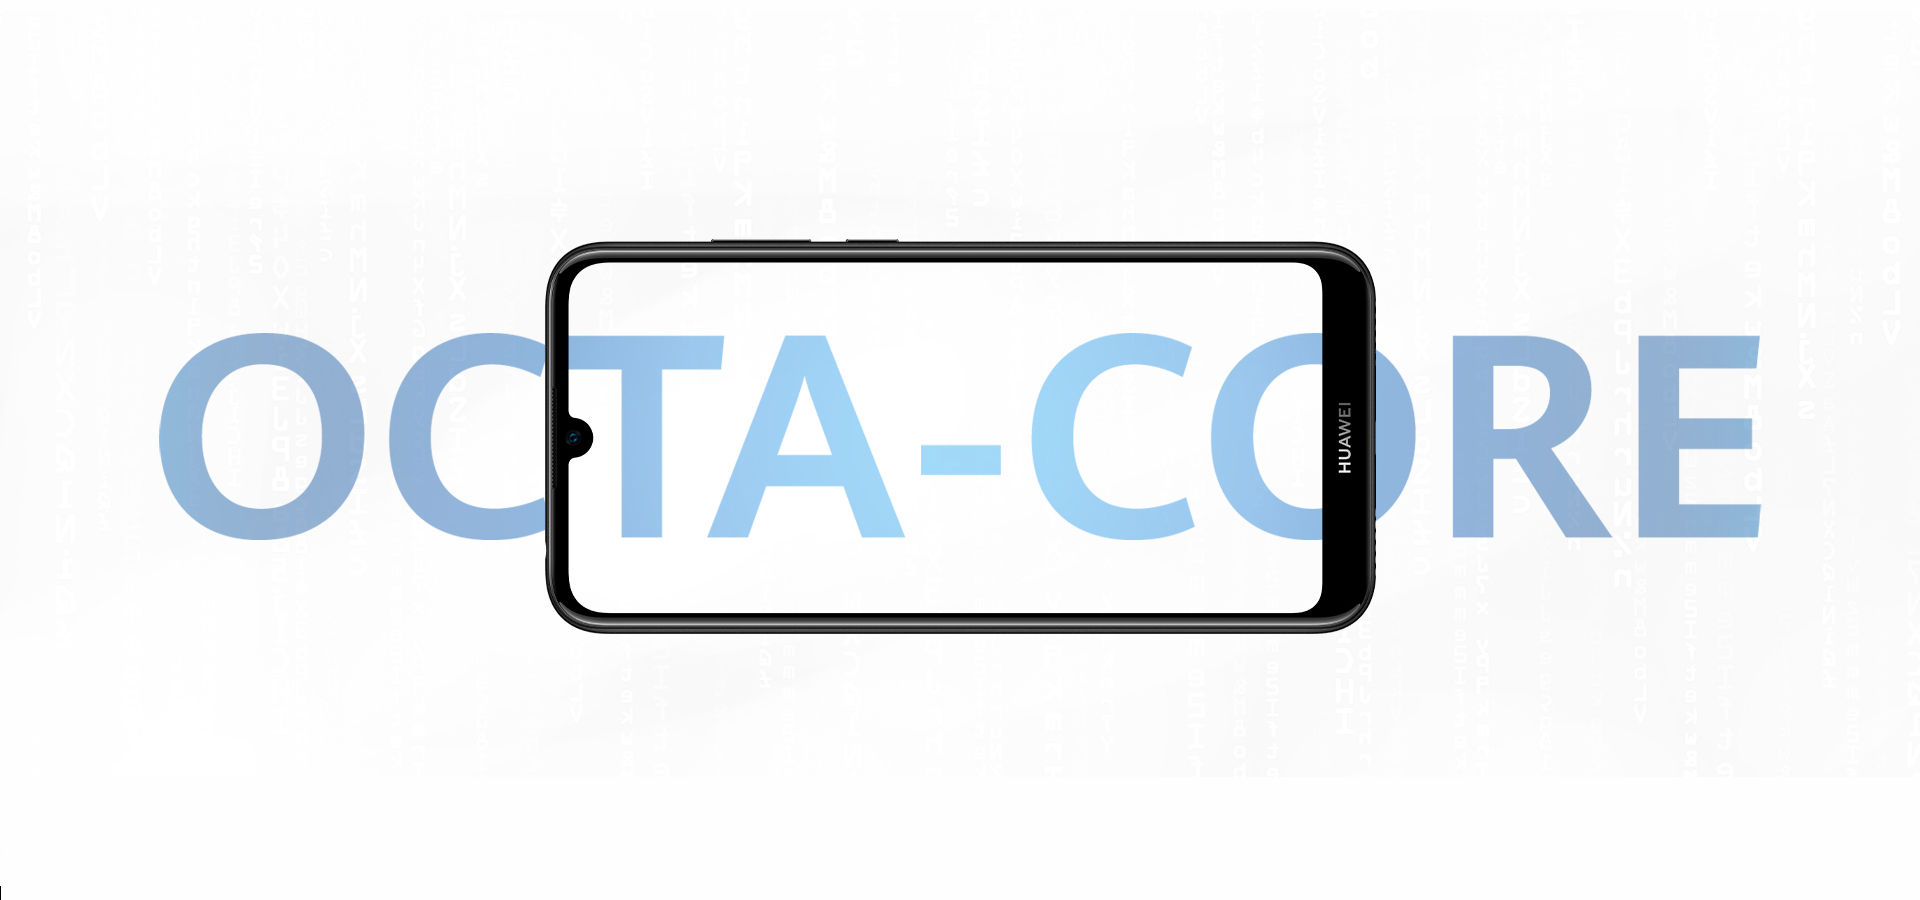 huawei y6s octa-core processor phone